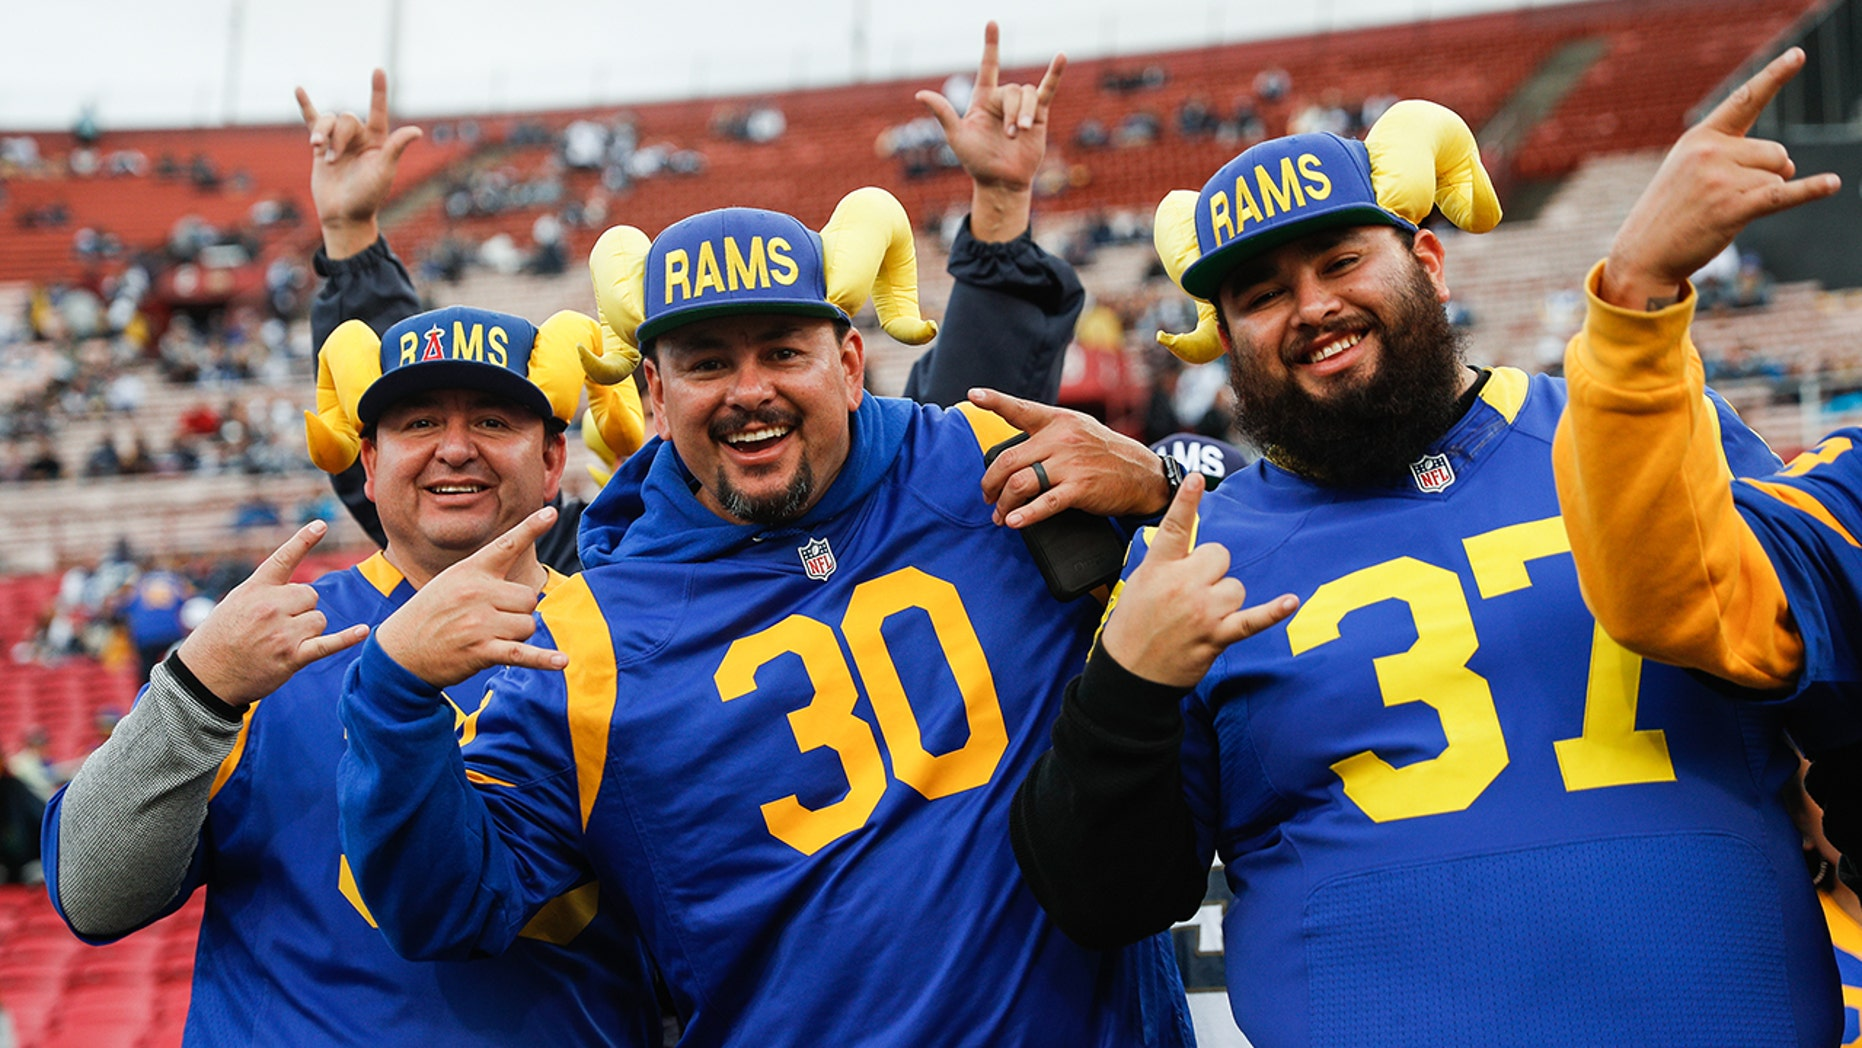 Los Angeles Rams fans pose for a photo ahead of the the NFC Divisional Round playoff game between the Los Angeles Rams and the Dallas Cowboys at Los Angeles Memorial Coliseum on January 12, 2019 in Los Angeles, California.